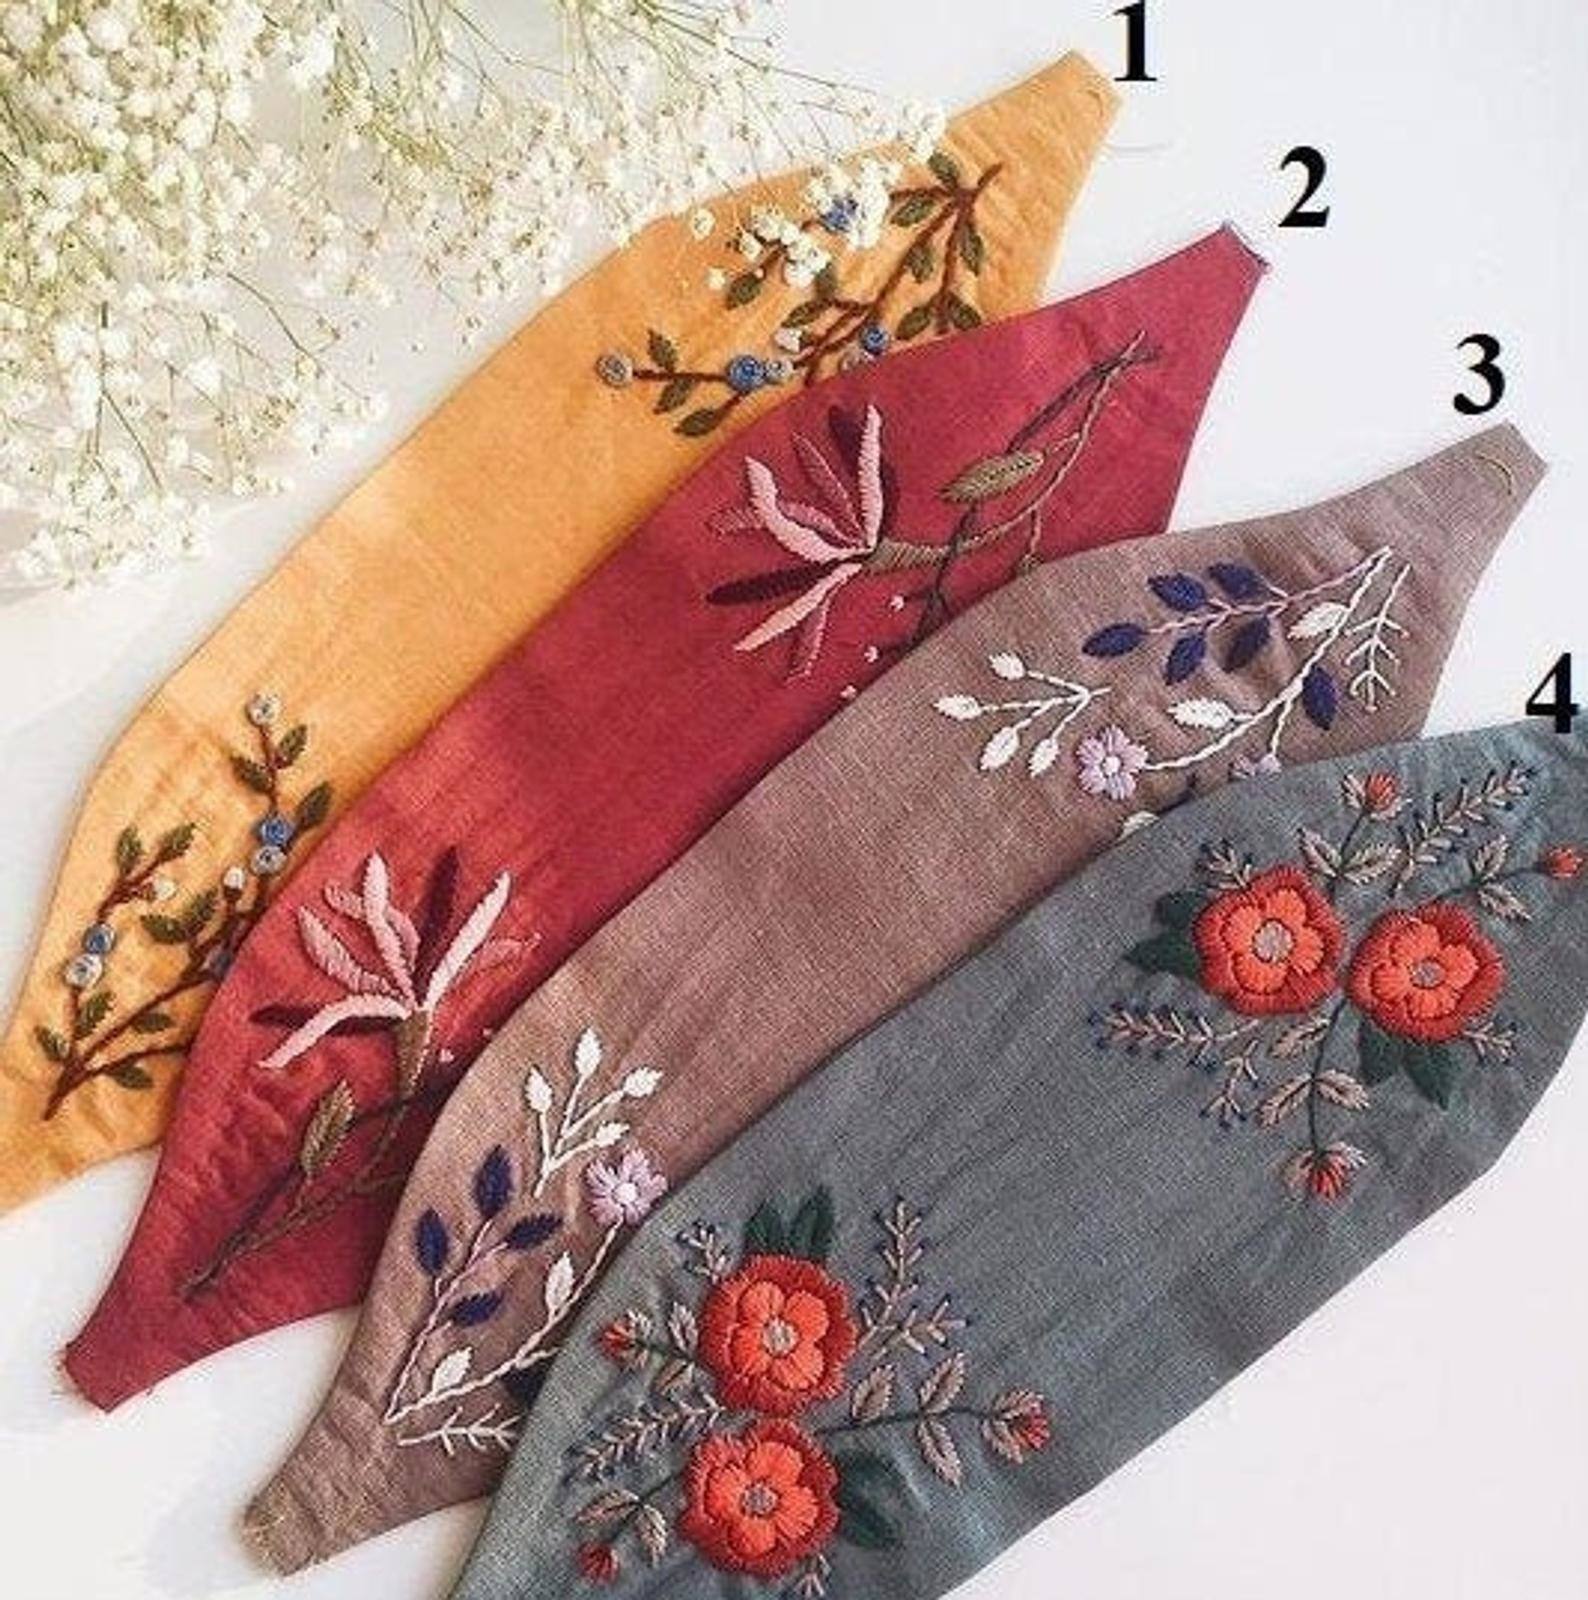 Four embroidered headbands in various colors